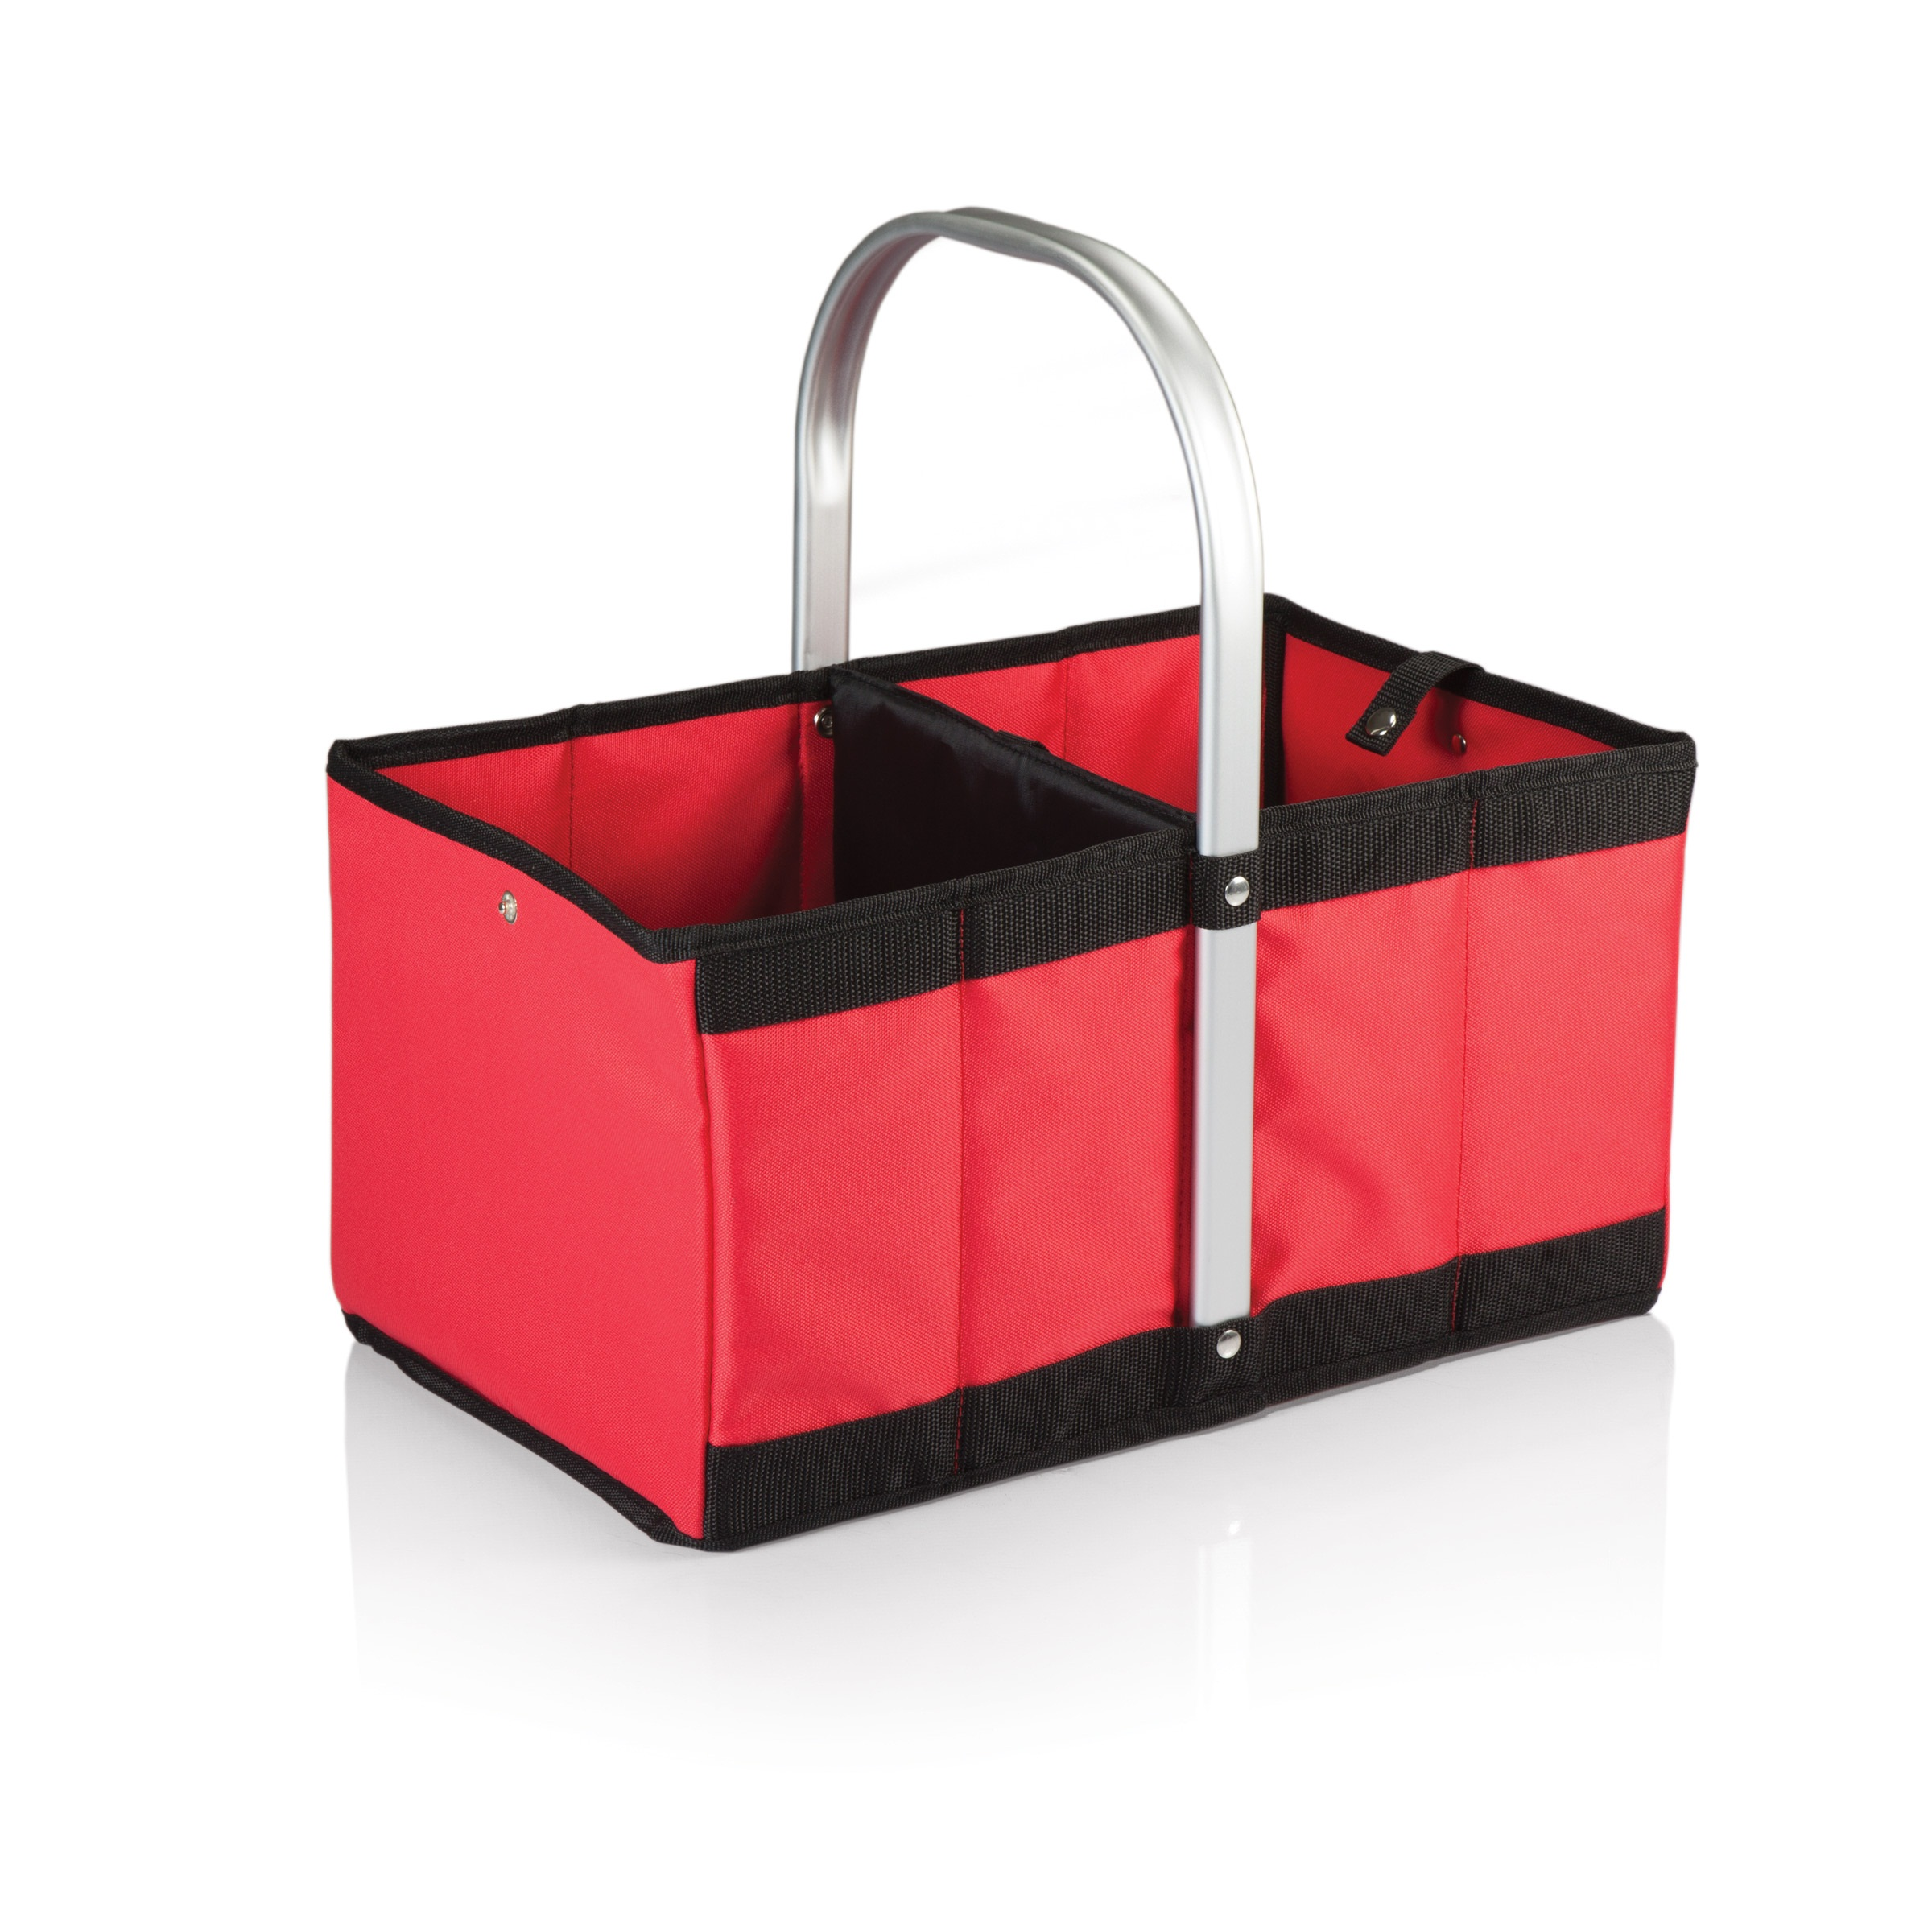 Picnic Time Urban Collapsible Canvas Basket Red